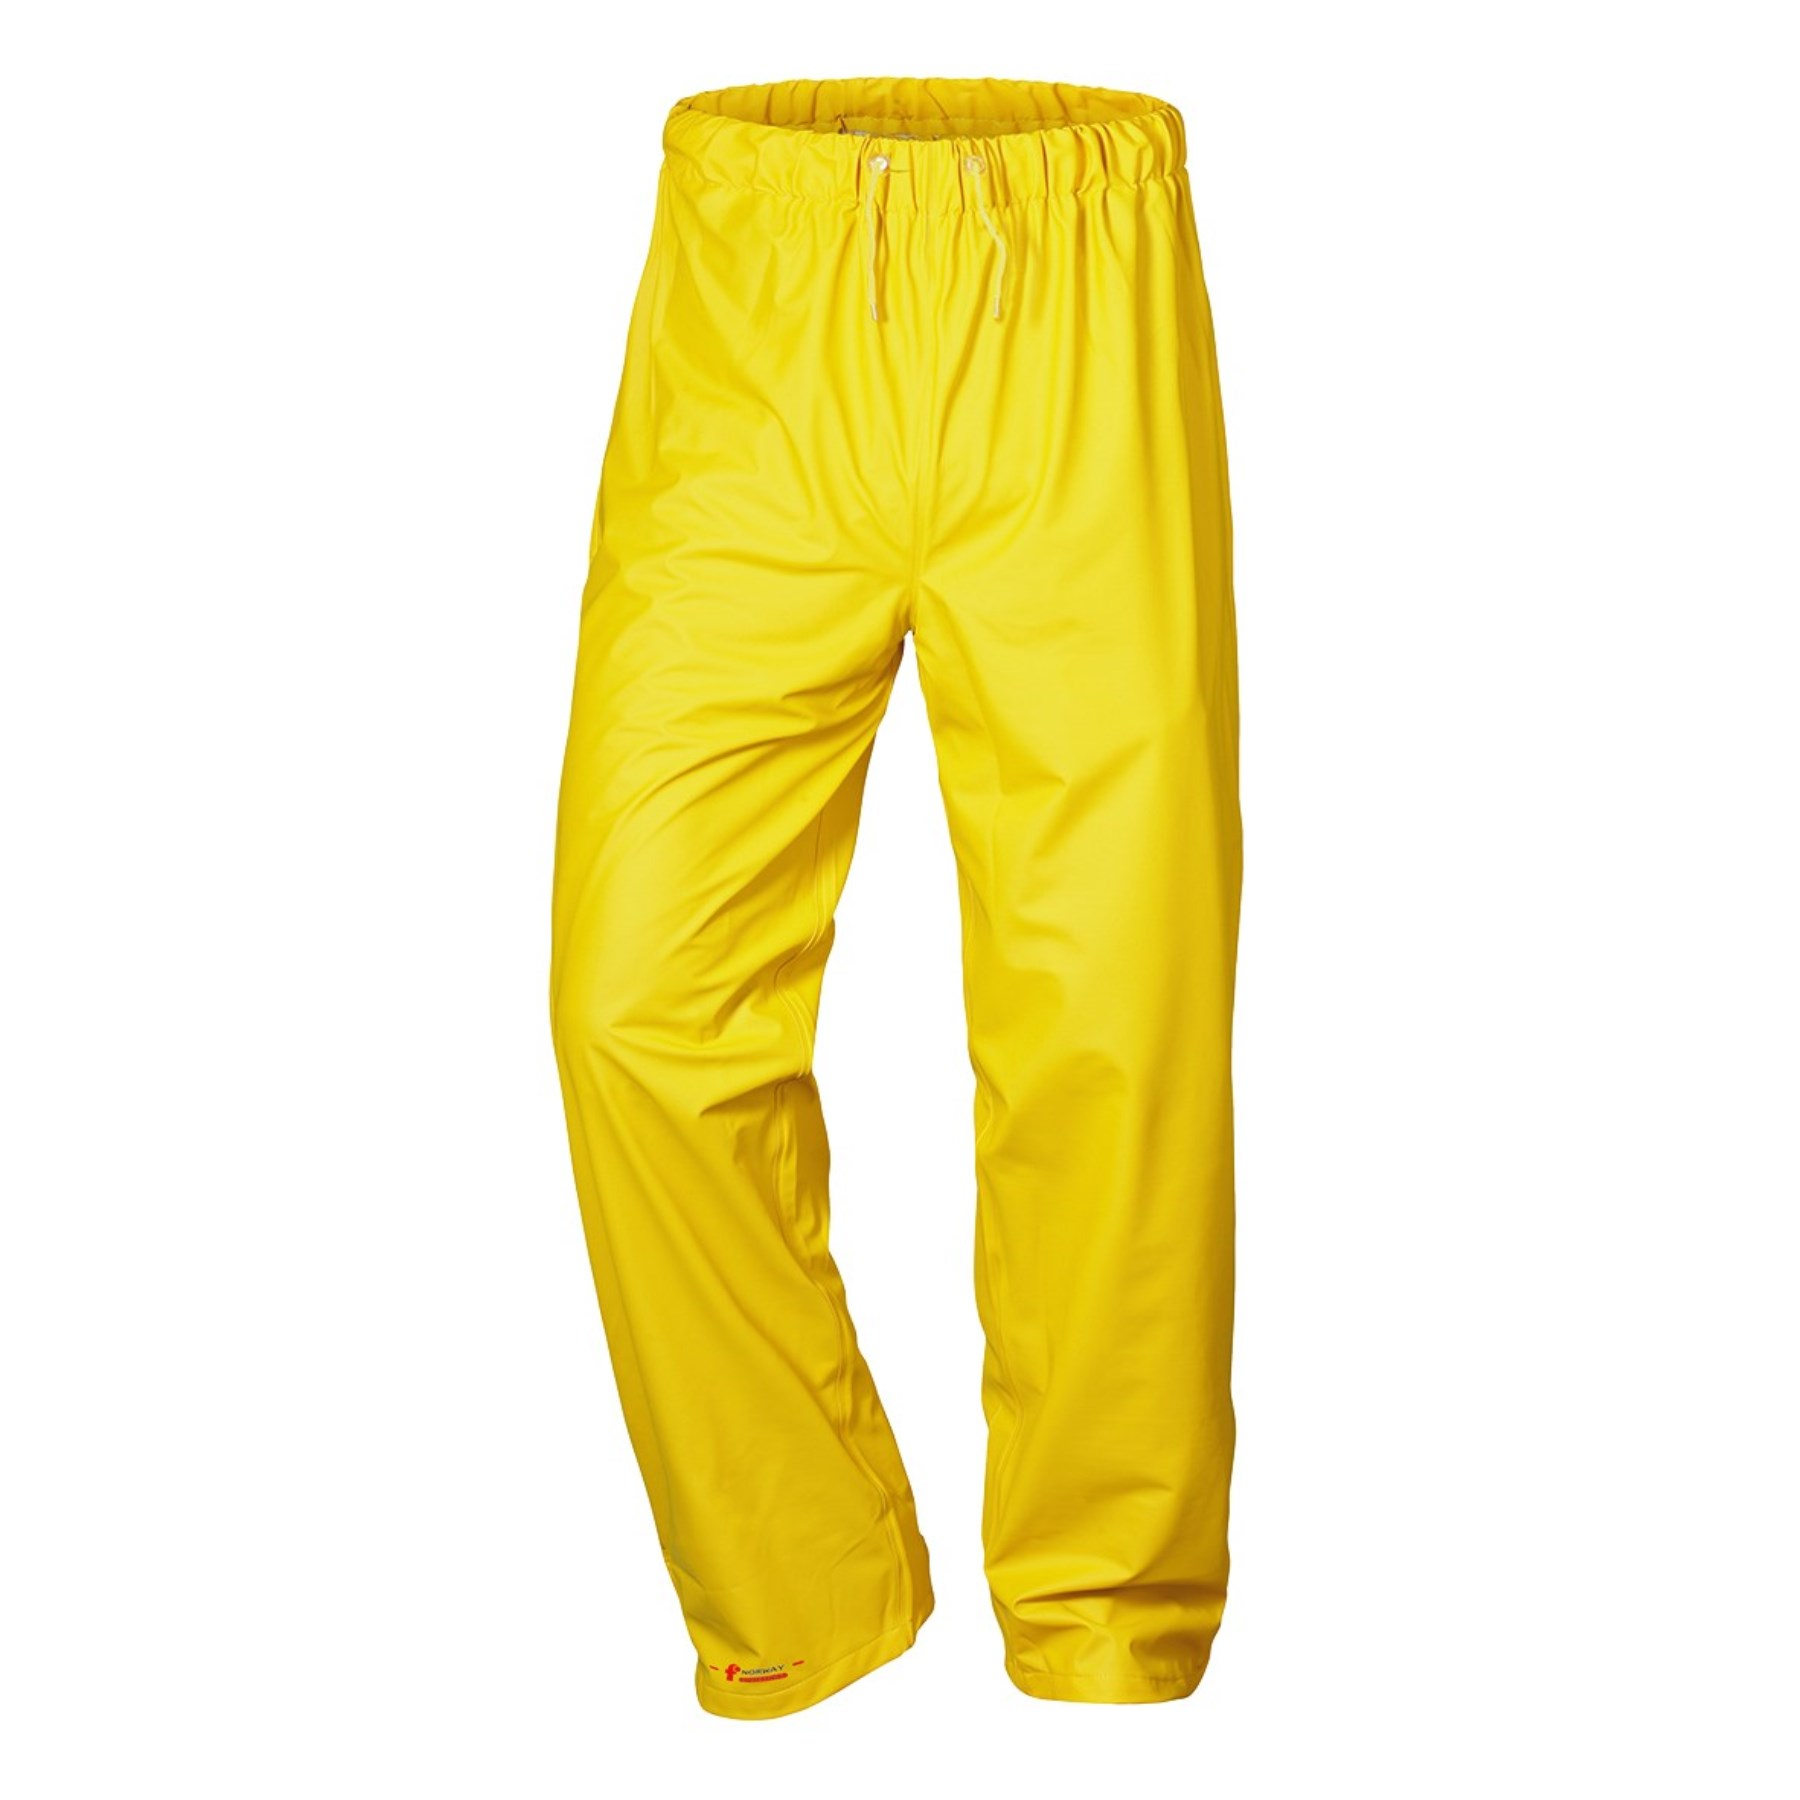 1223600 - Regenhose PU-Stretch